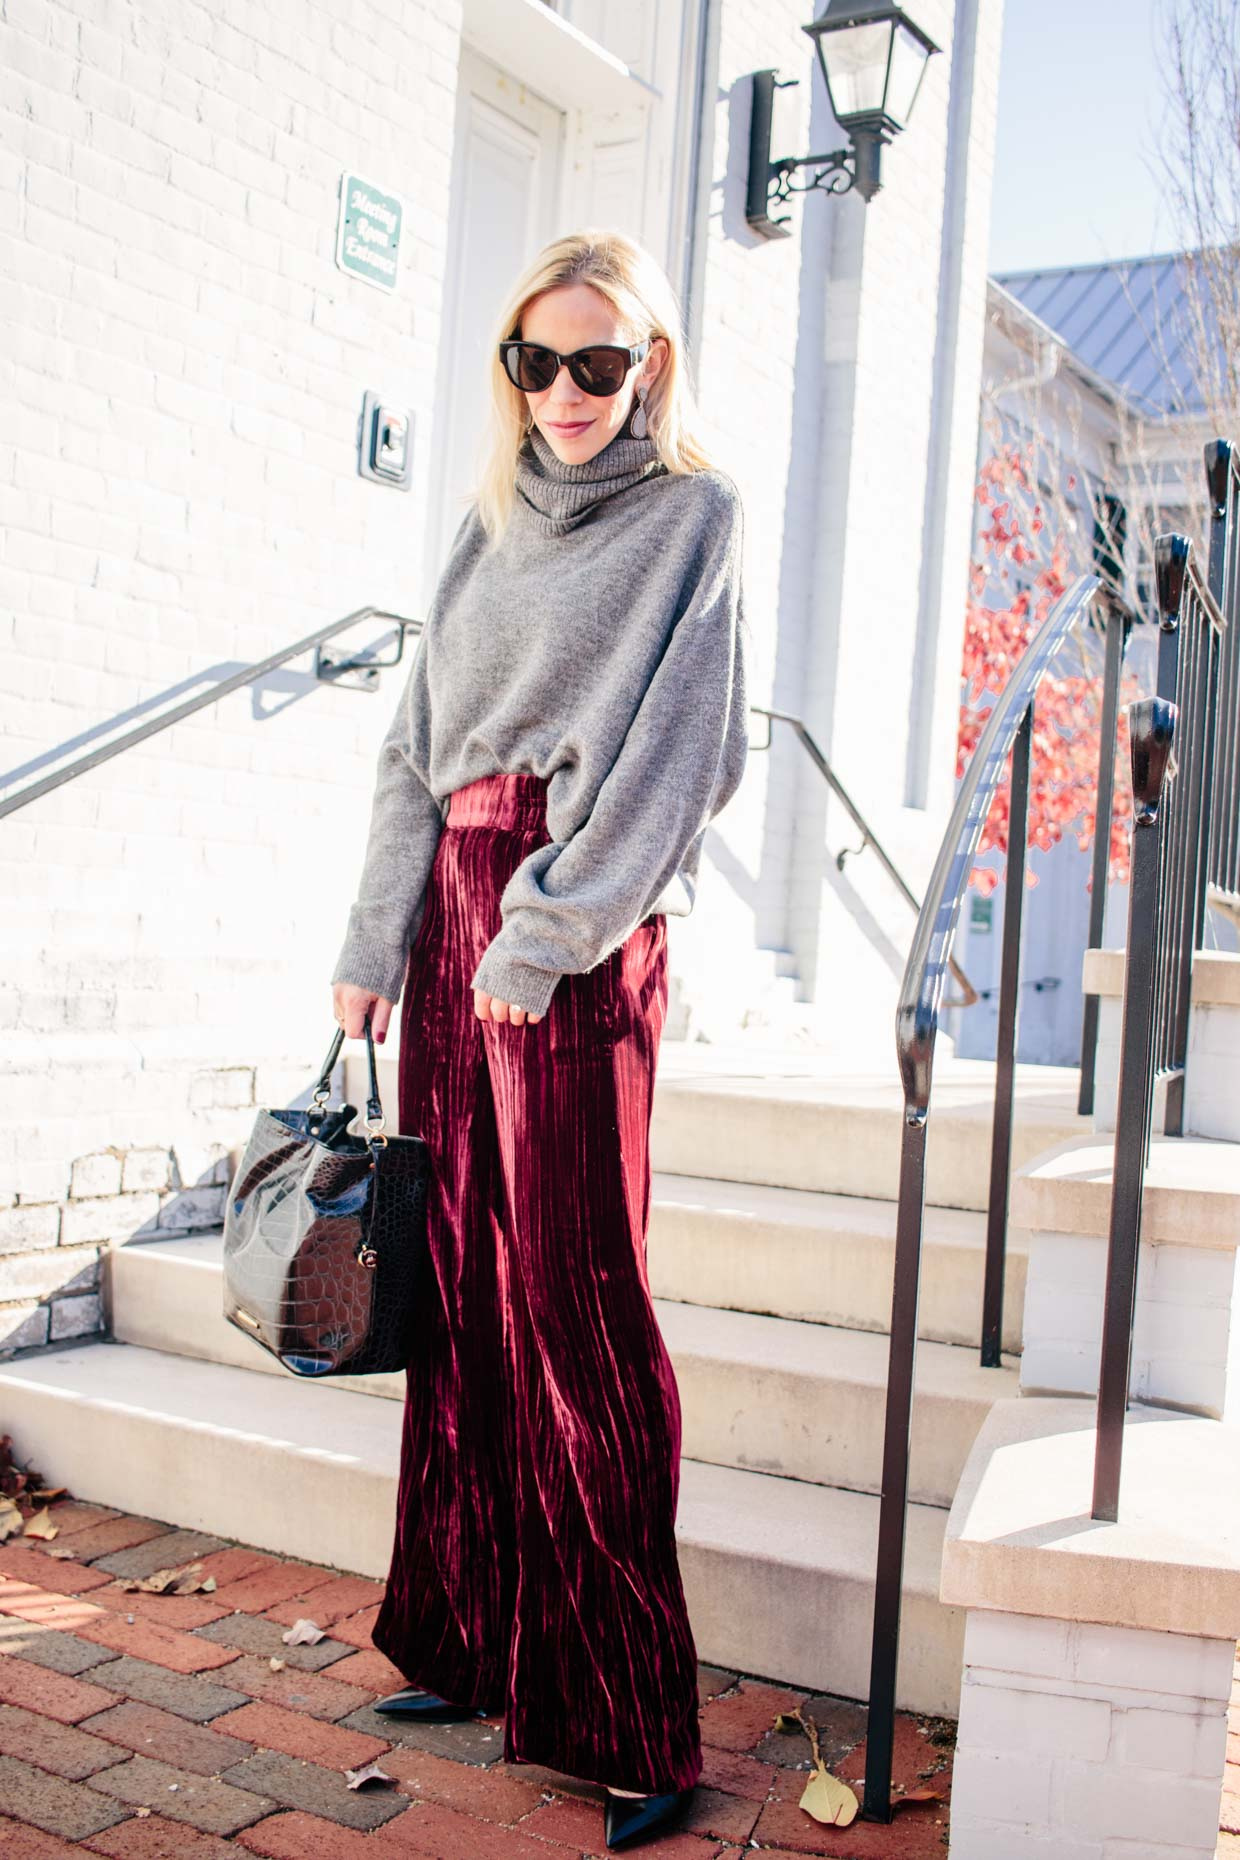 Meagan Brandon Fashion Blogger Of Meagan S Moda Wears Gray Oversized Turtleneck Sweater With Red Velvet Pants For Chic Cozy Holiday Outfit Meagan S Moda